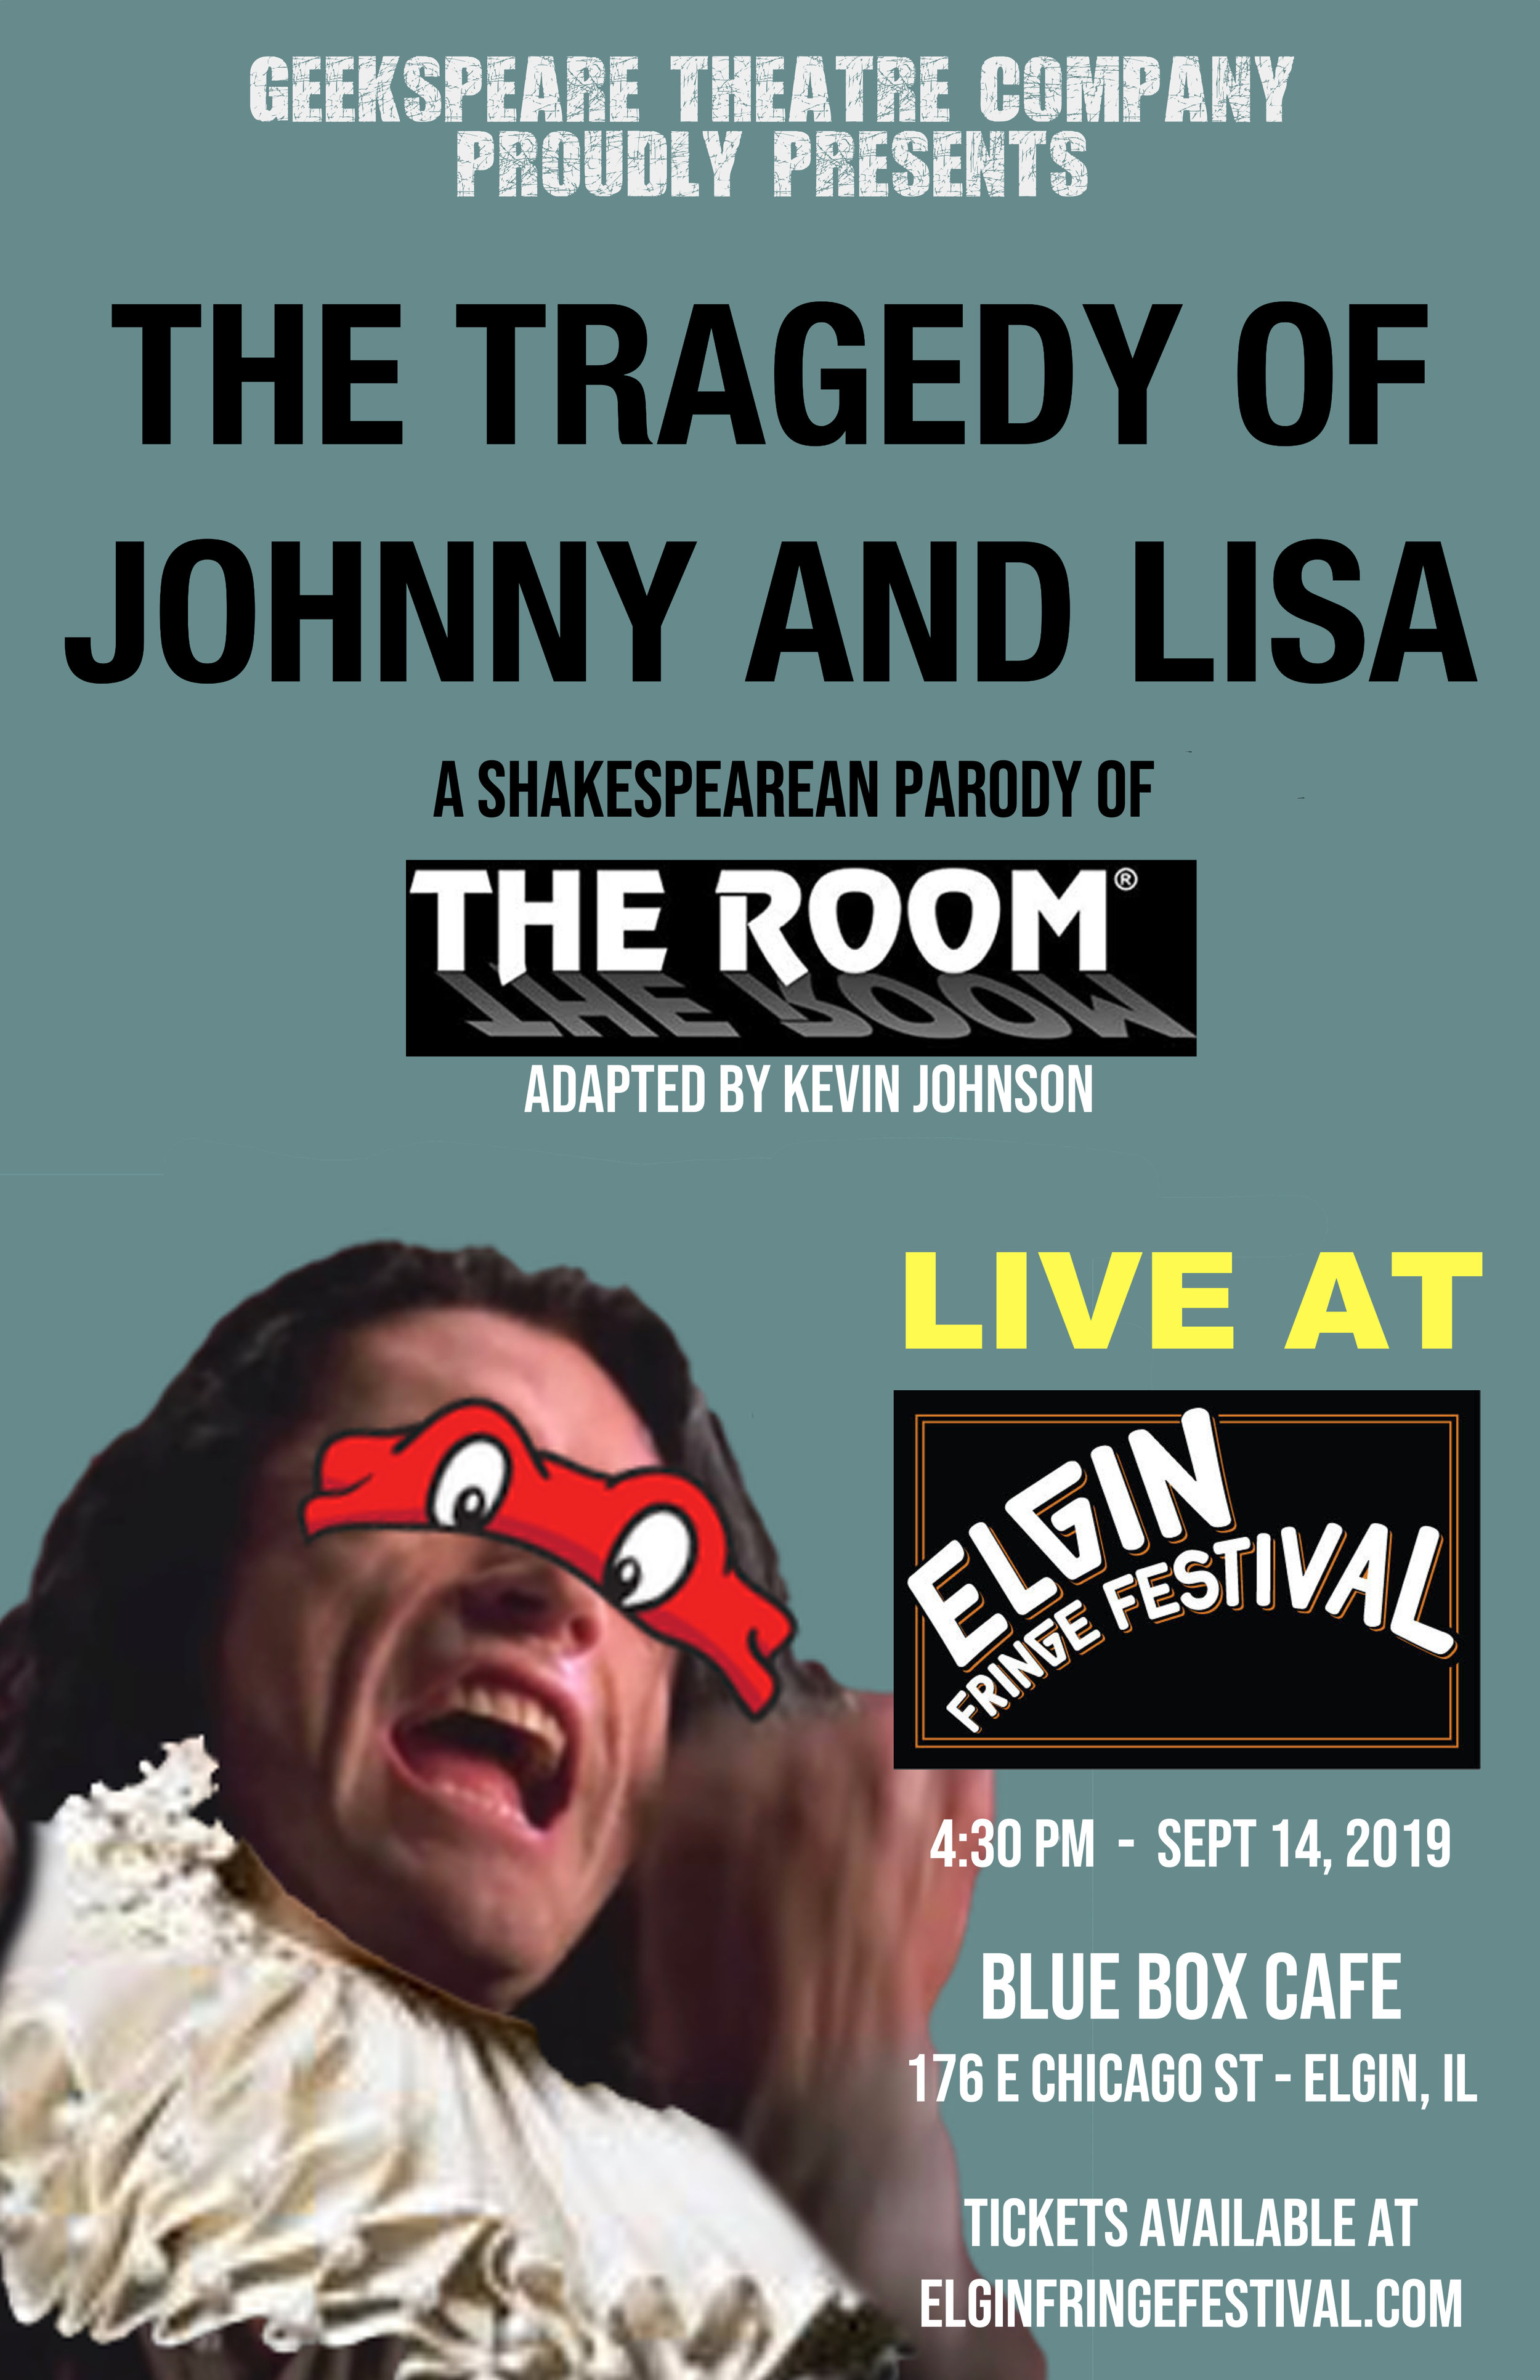 JOHNNY AND LISA POSTER C 2019 11X17.jpg